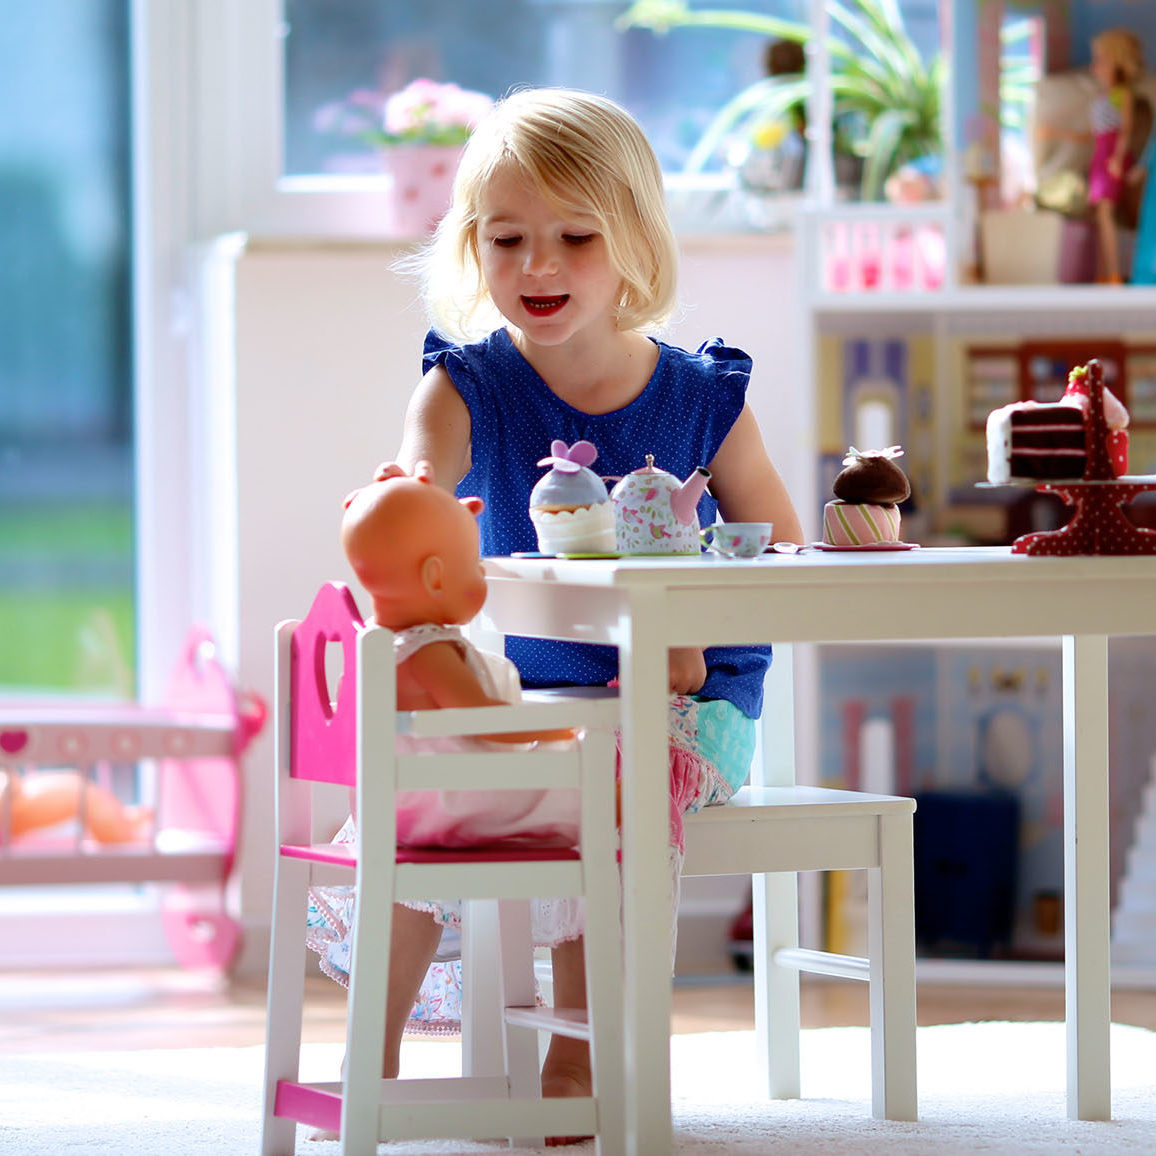 Ahead of the Autumn Statement CBI Calls for £2bn Investment in Childcare